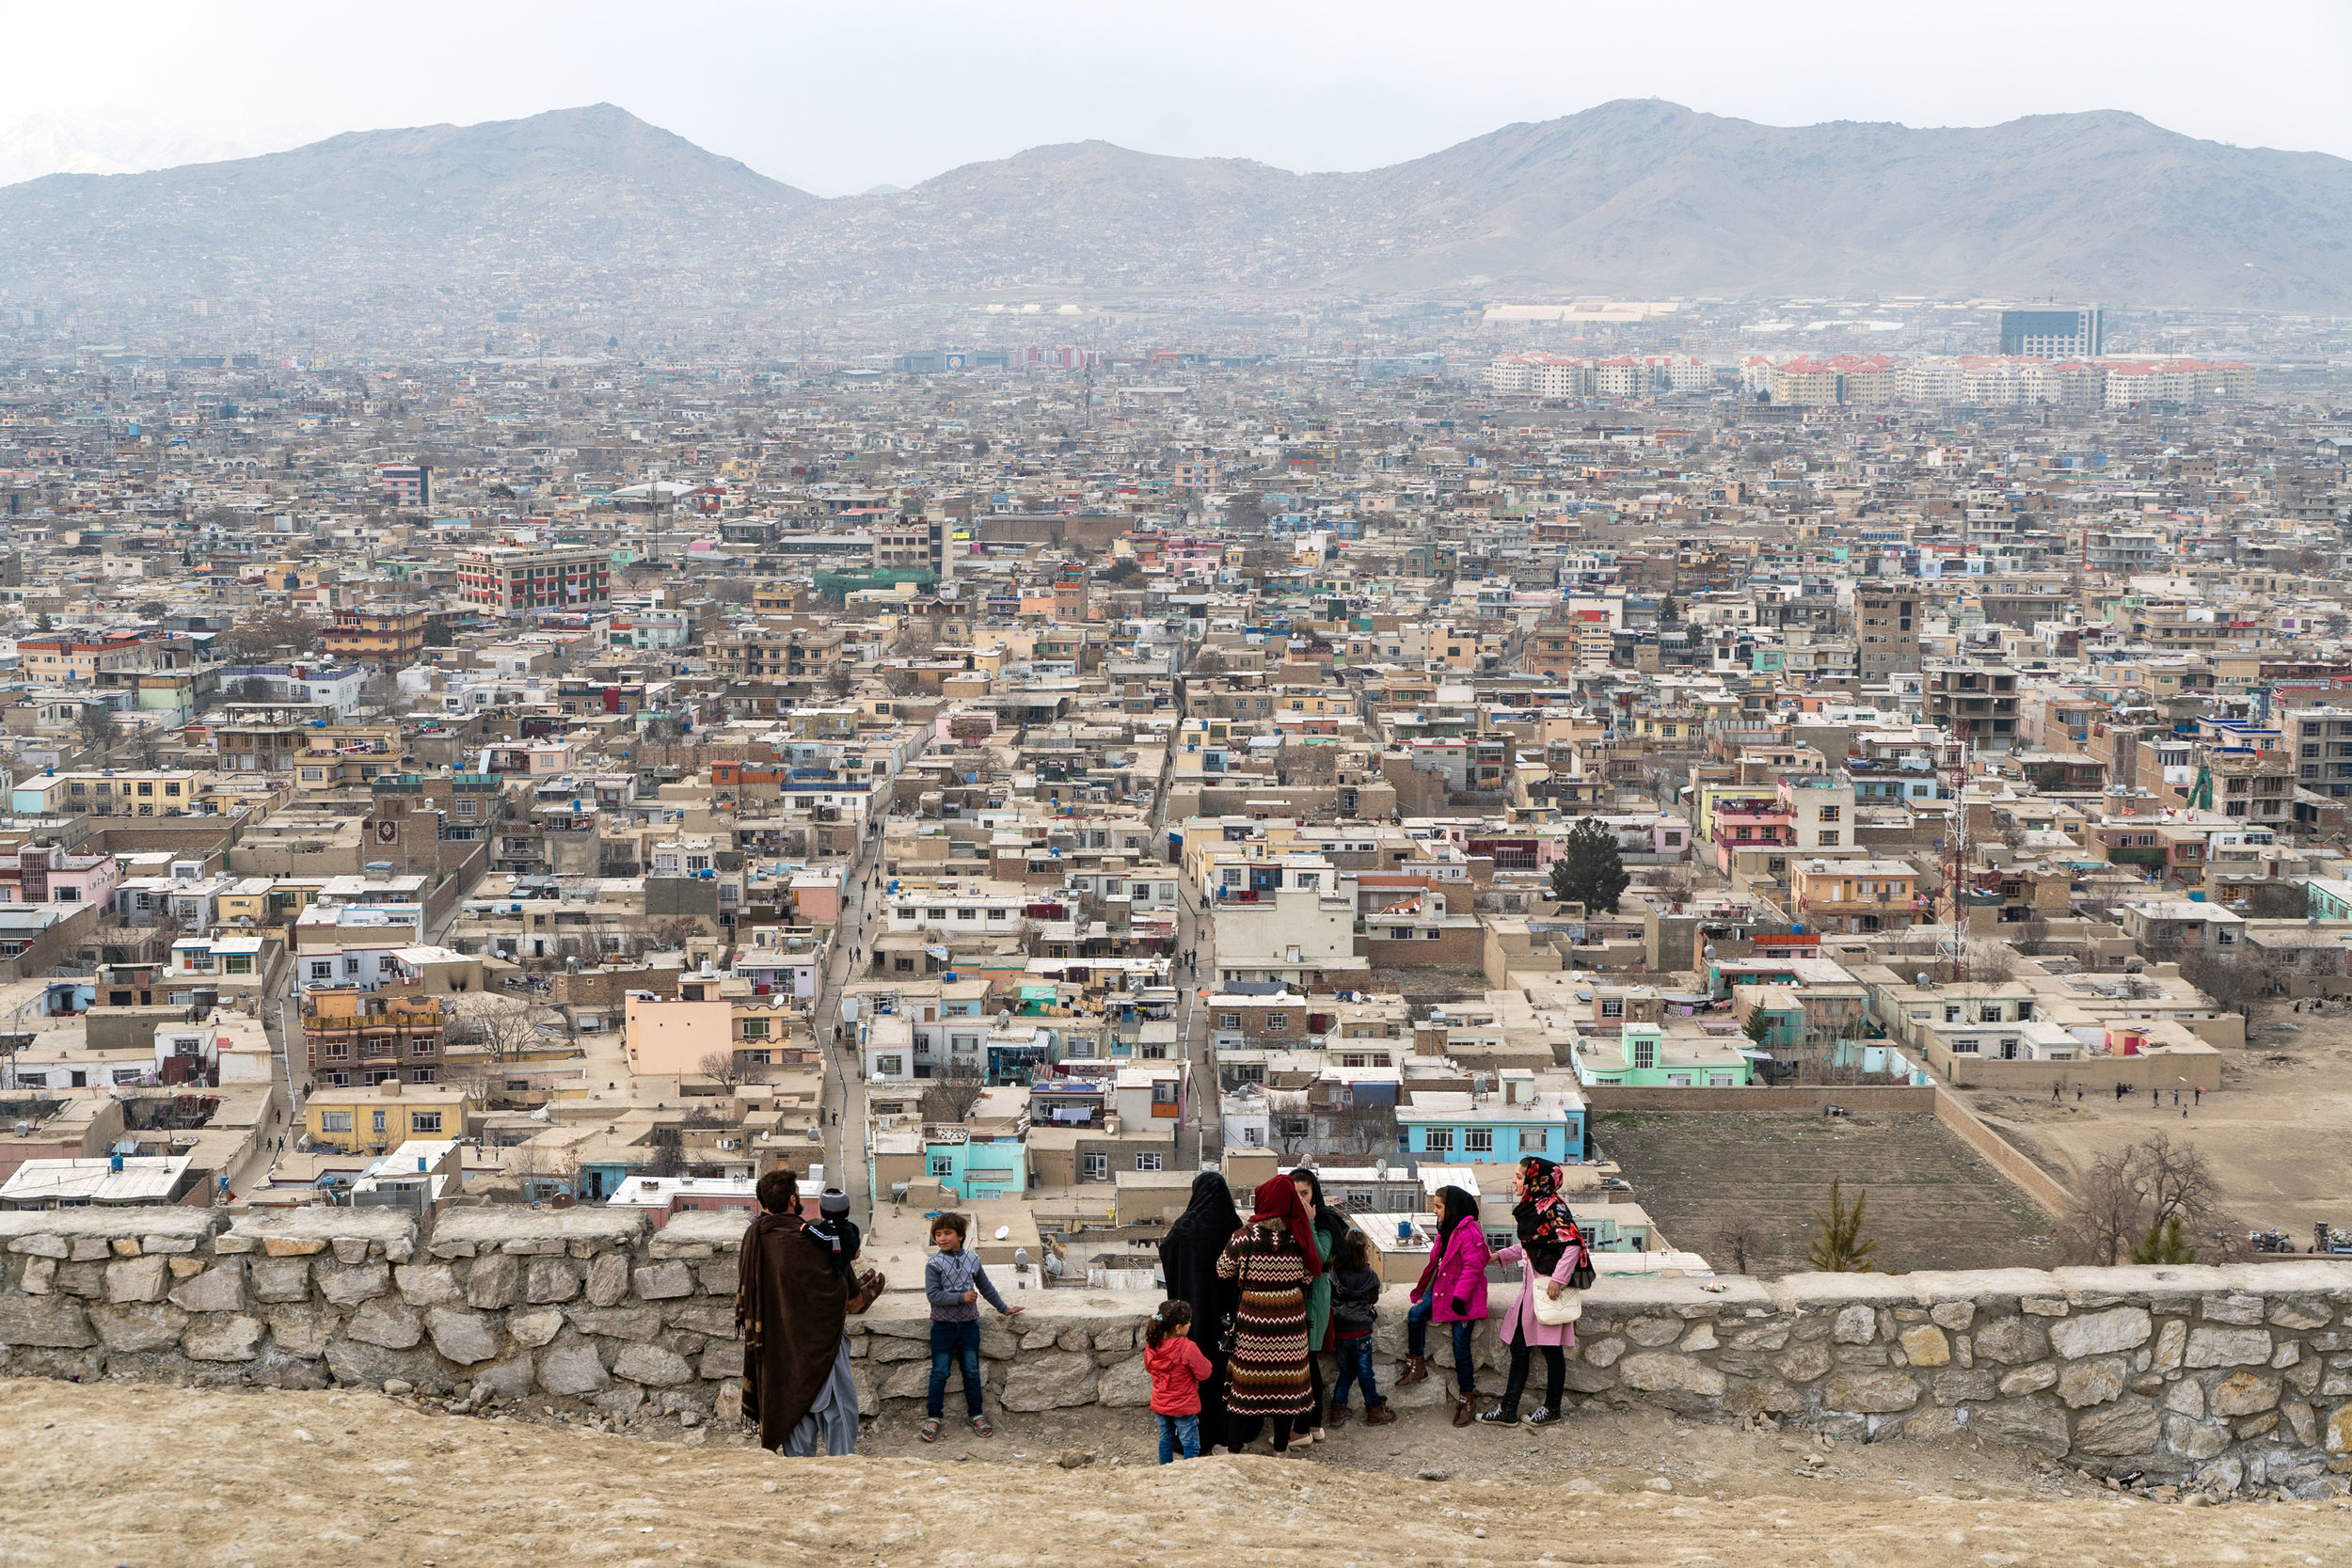 An Afghan family takes in the views over Kabul from Bibi Mahroo Hill.